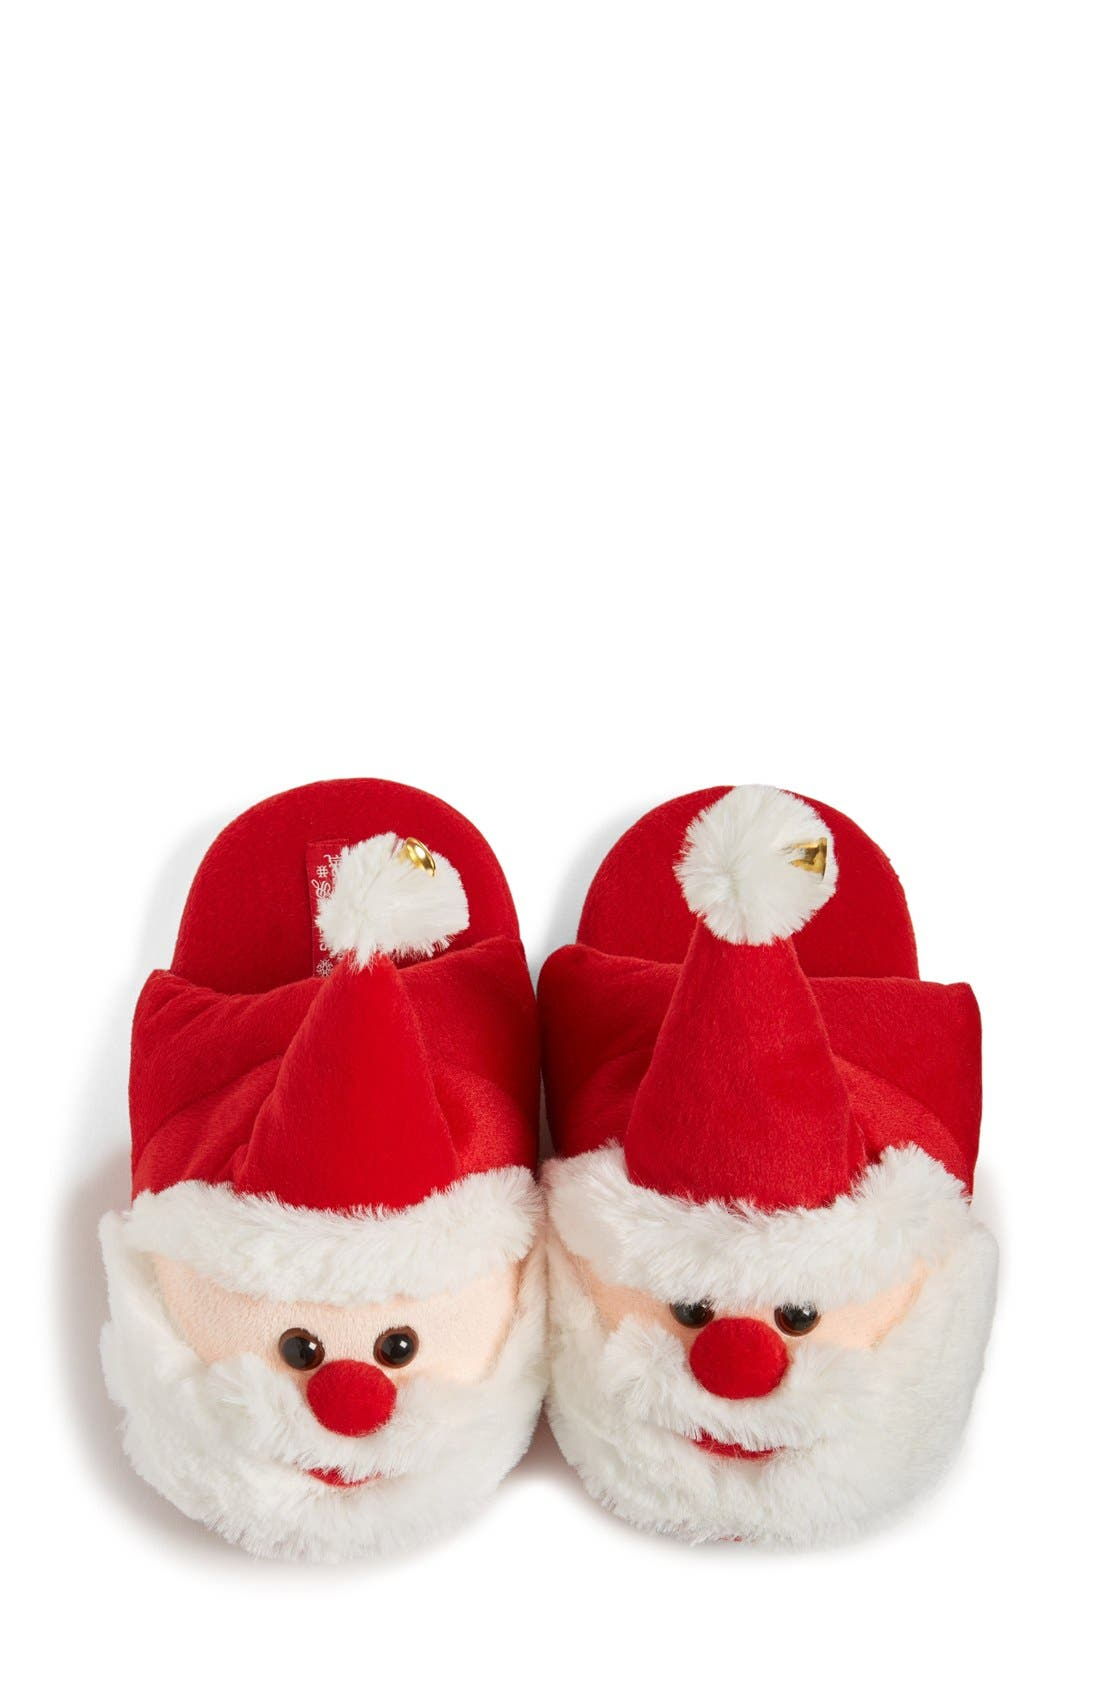 UGLY CHRISTMAS SLIPPERS,                             Santa Scuff Slippers,                             Alternate thumbnail 2, color,                             600